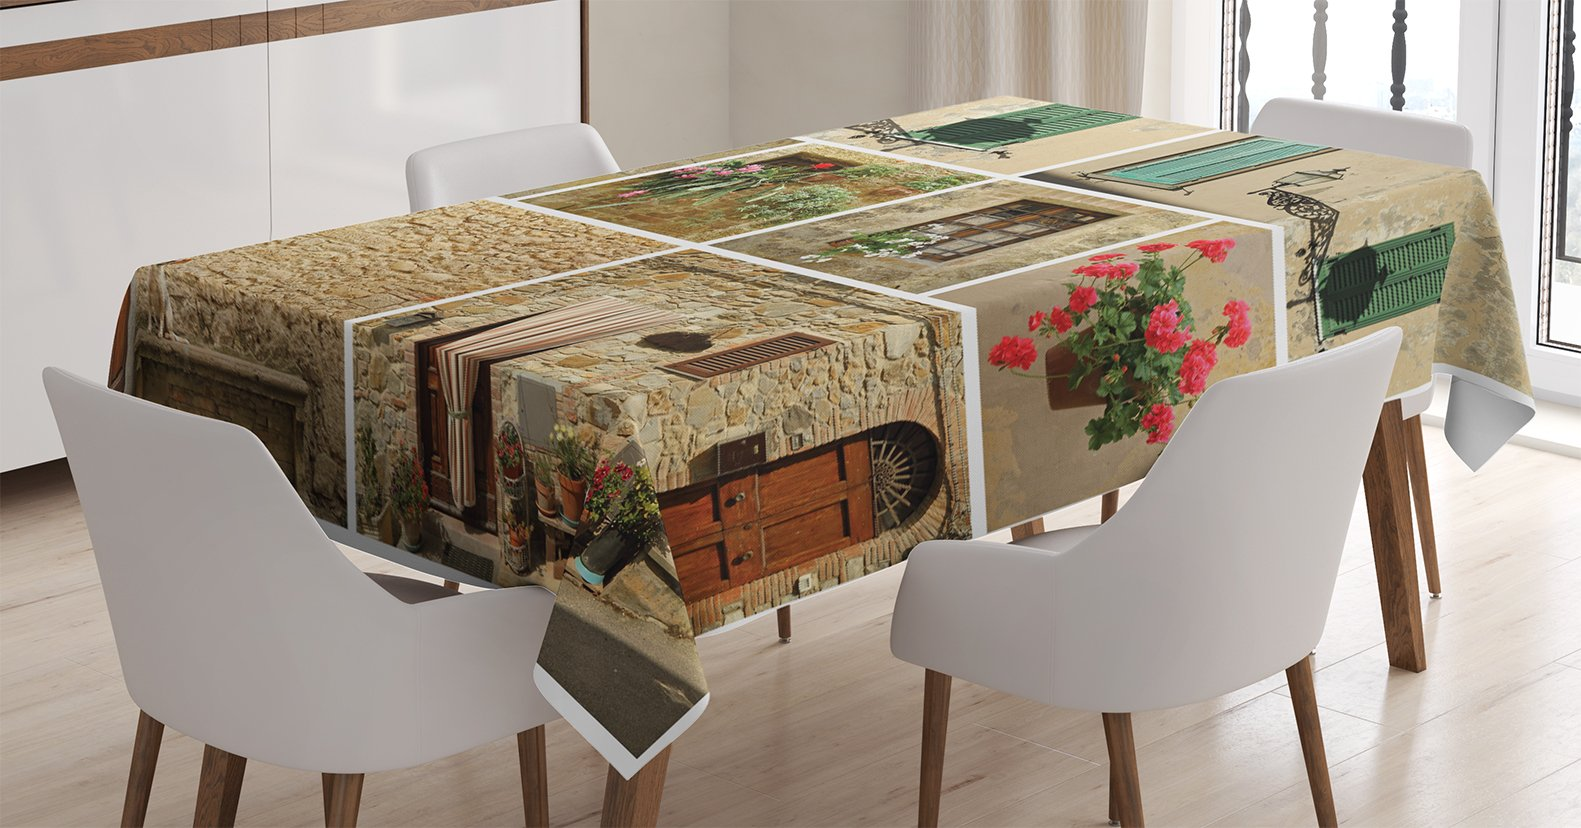 Ambesonne Tuscan Decor Tablecloth, Various Pictures of Italian Lifestyle with Old Classic Shutter Window and Stone Houses Print, Rectangular Table Cover for Dining Room Kitchen, 60x90 inch, Multi